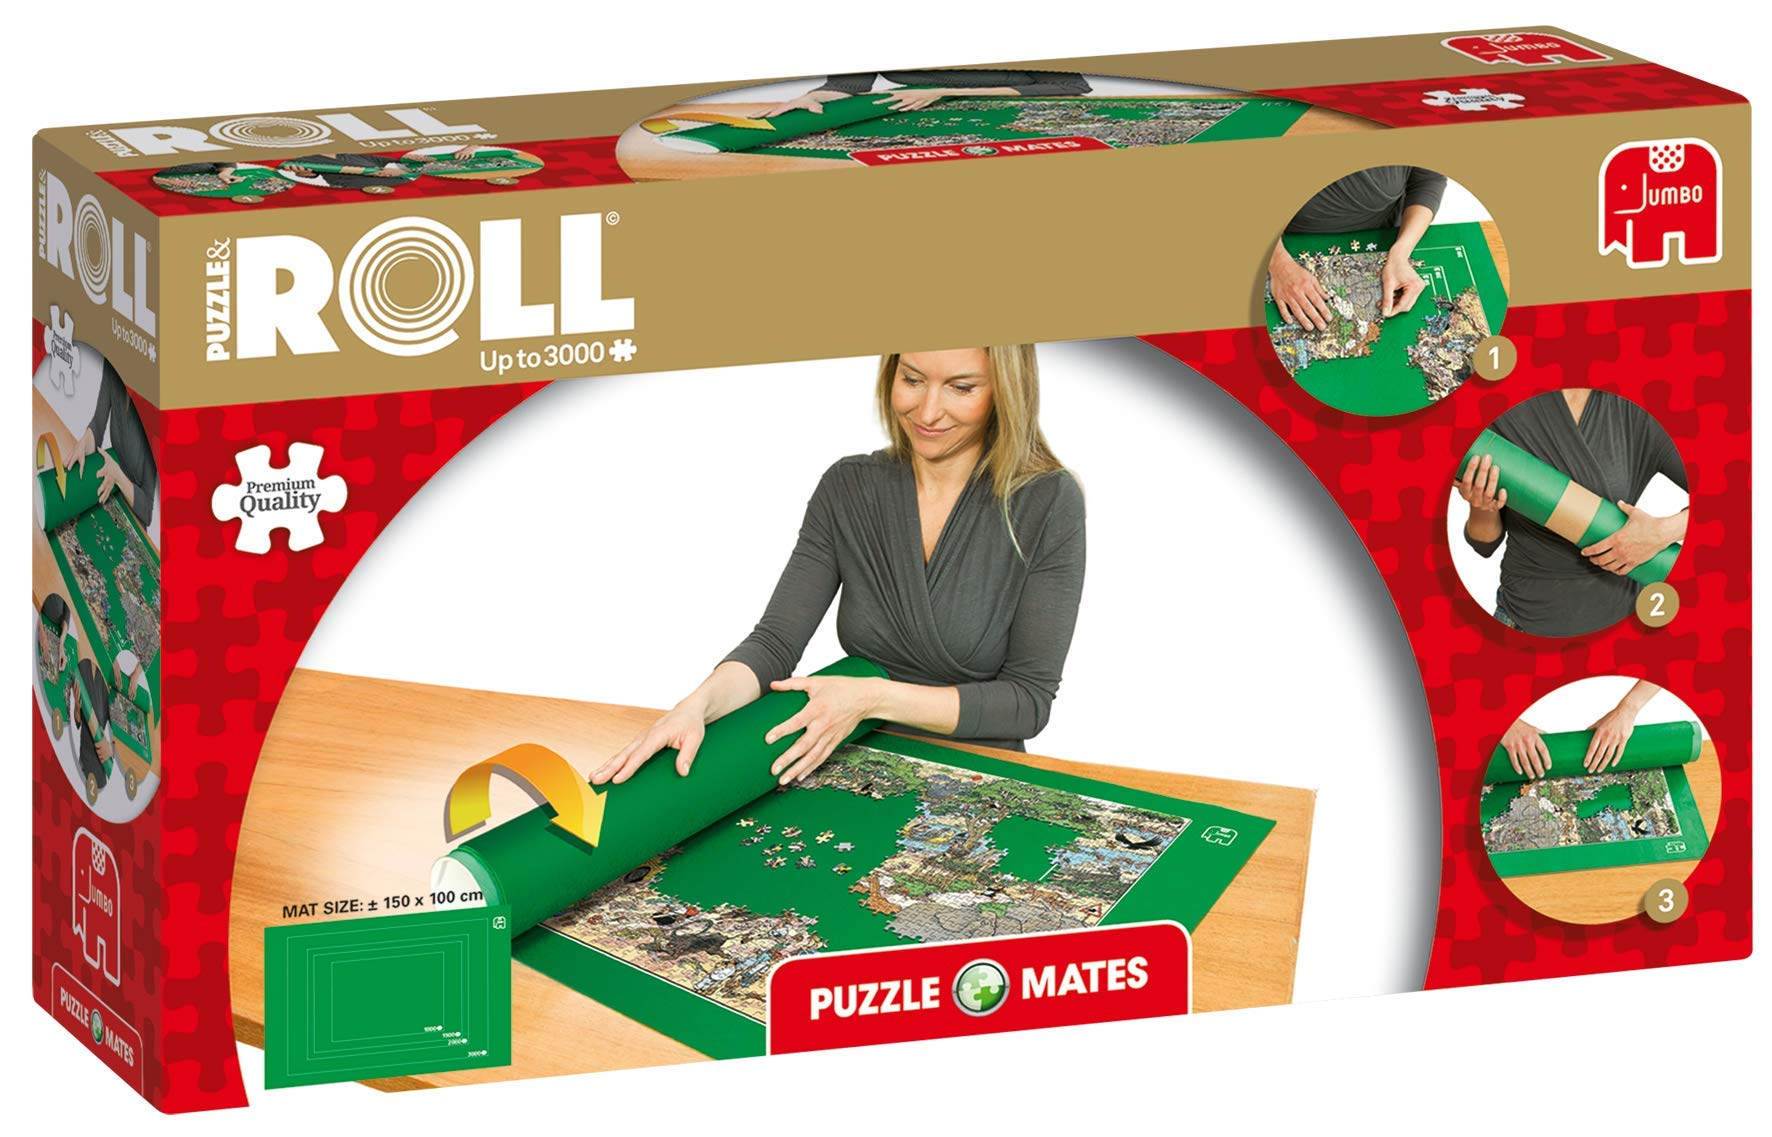 Puzzle Mates 17691 Puzzle and Roll Jigroll for up to 3000 Pieces, Multi